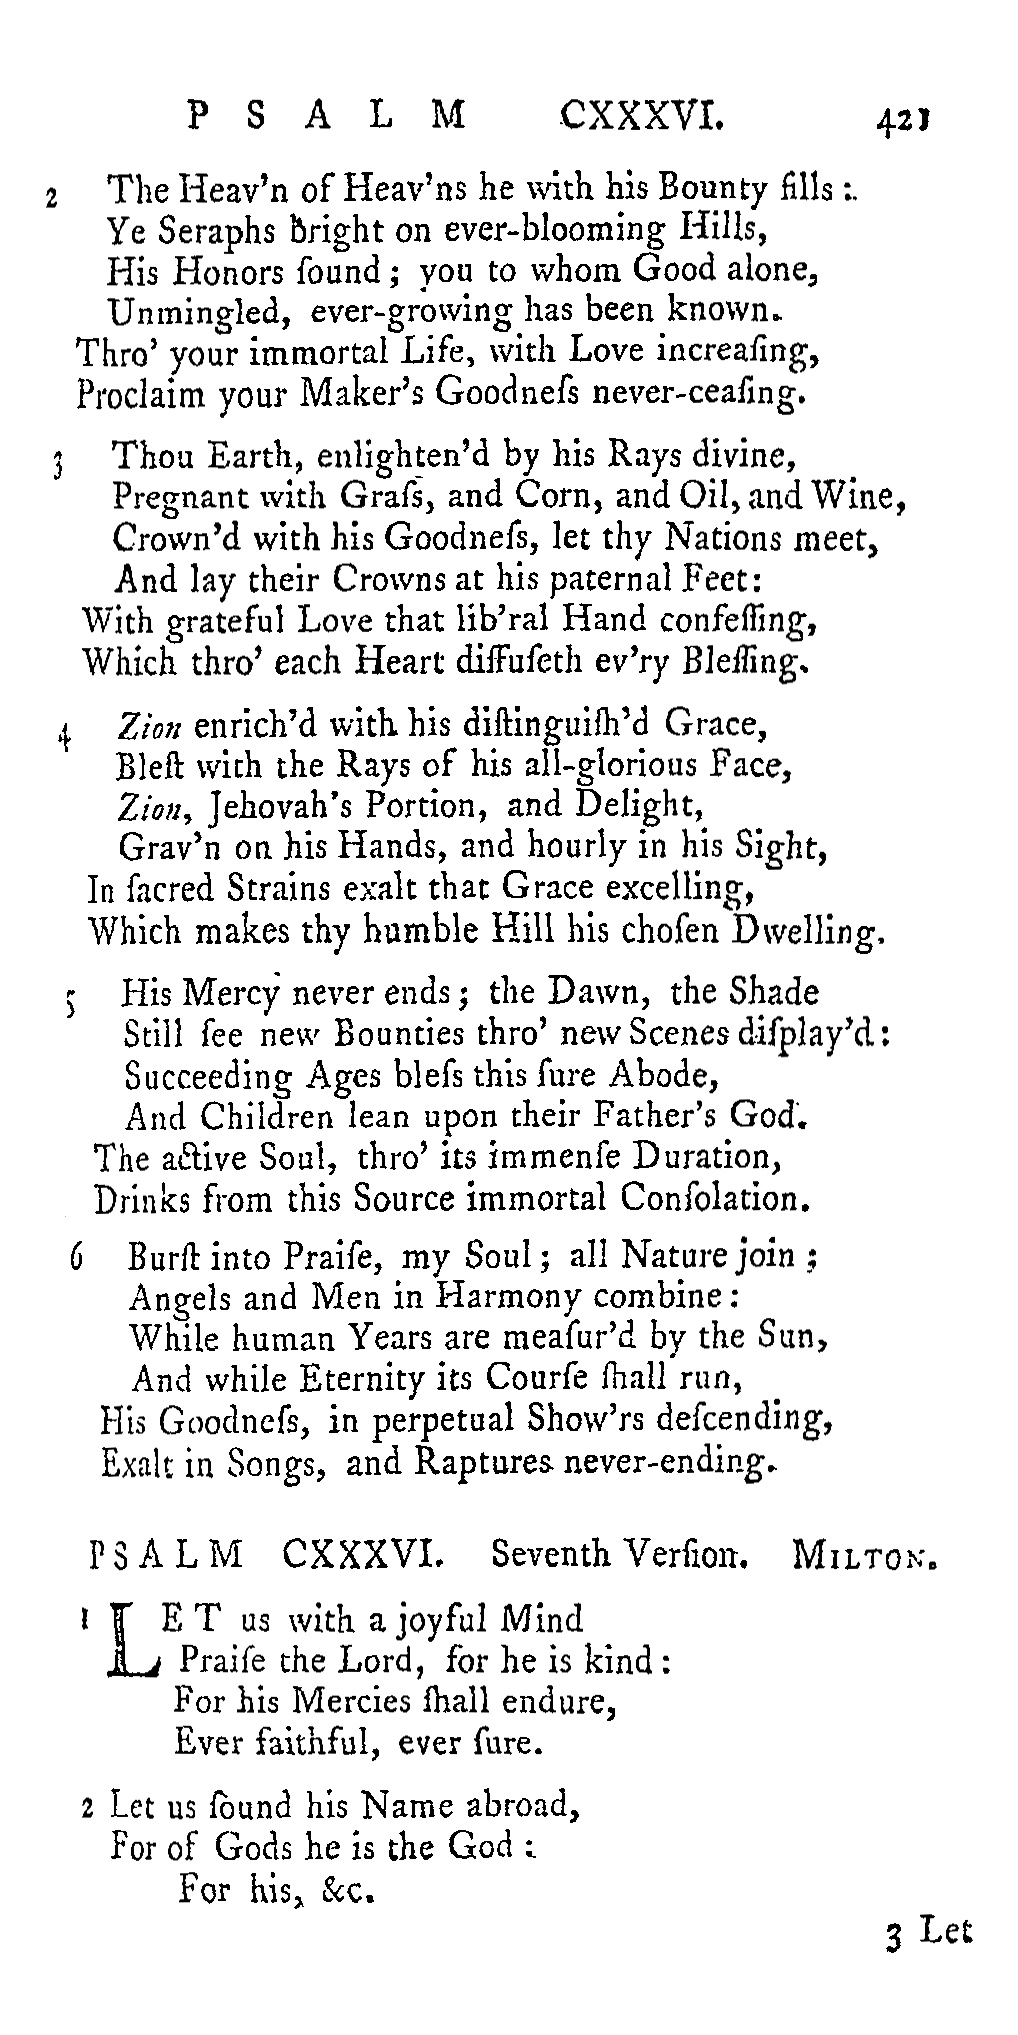 BookofPsalms-1781-518.jpg